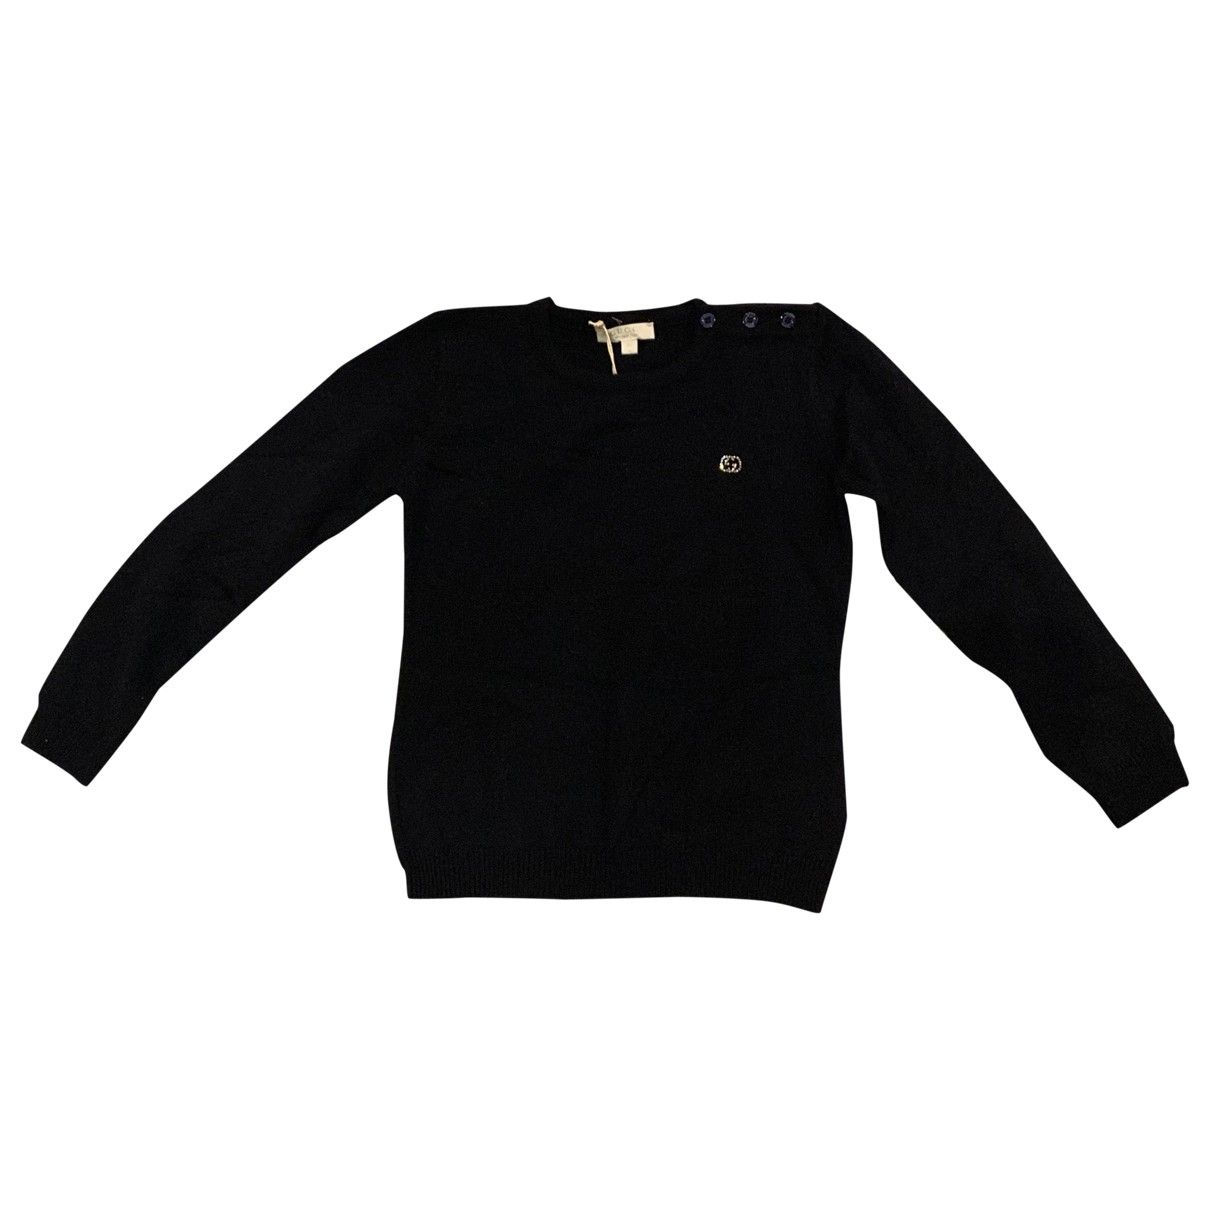 Gucci \N Black Cashmere Knitwear for Kids 3 years - up to 98cm FR